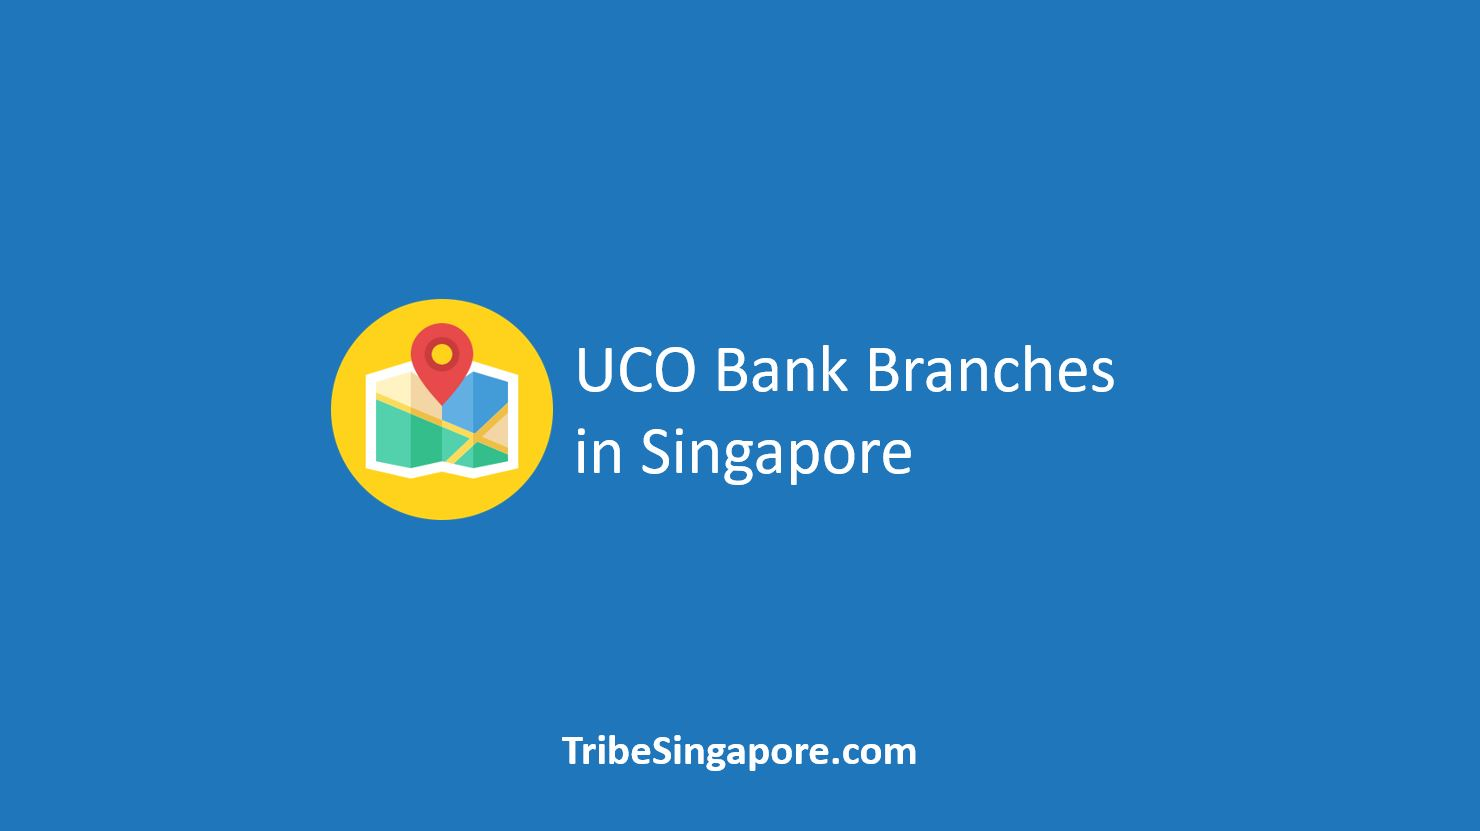 UCO Bank Branches in Singapore